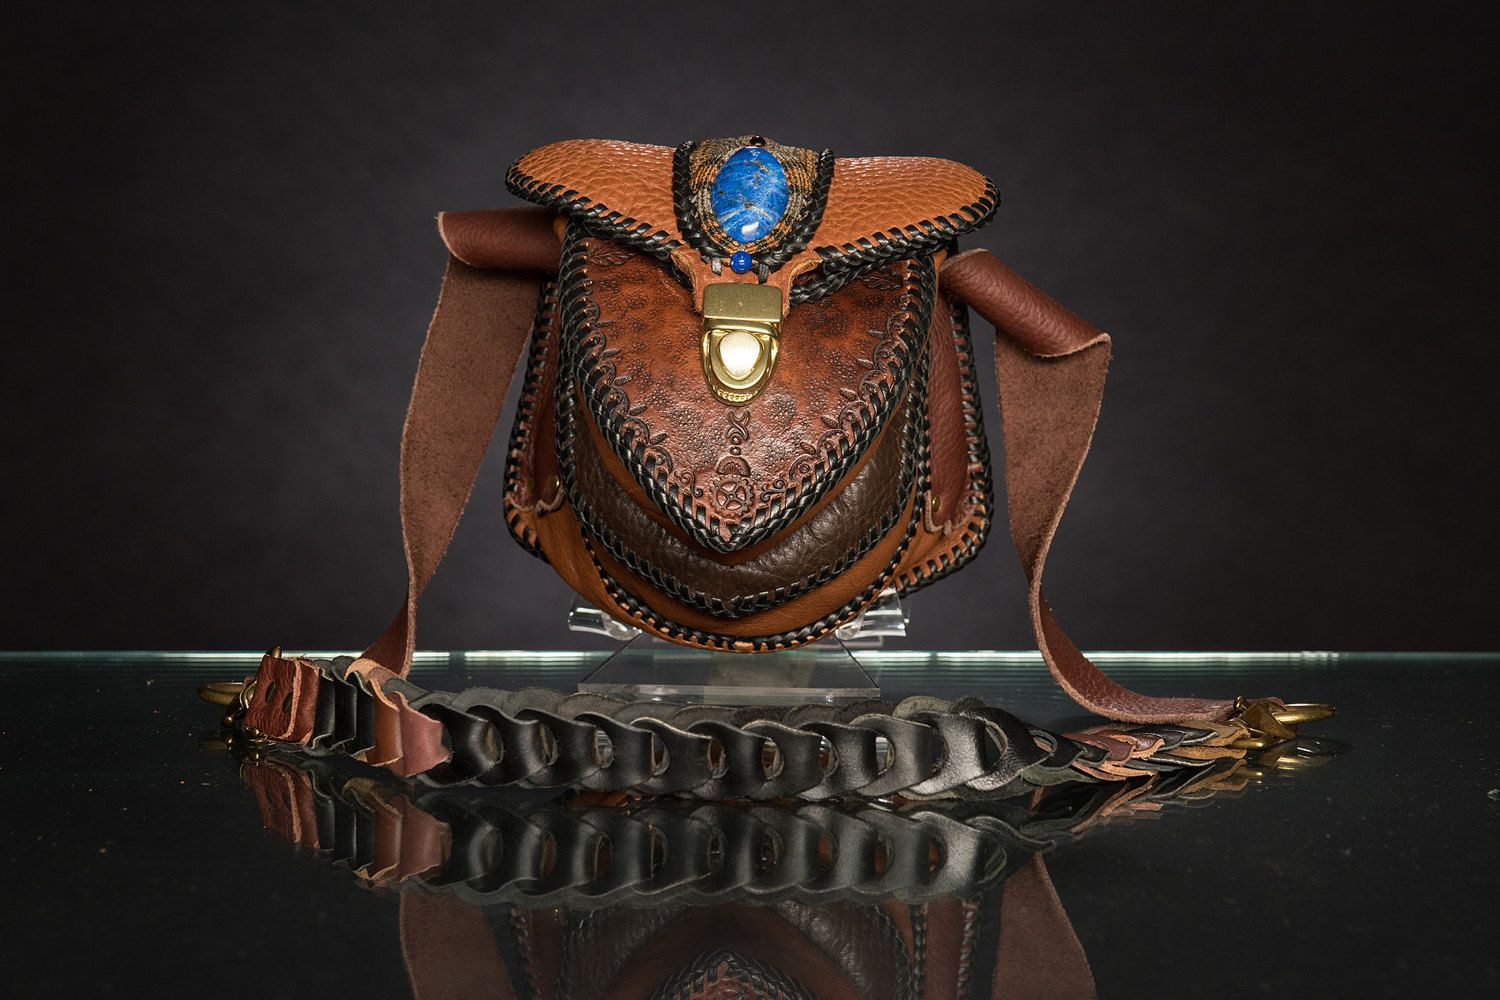 Leather Shoulder Bag Purse with Micro Macrame Inlay от Elquino